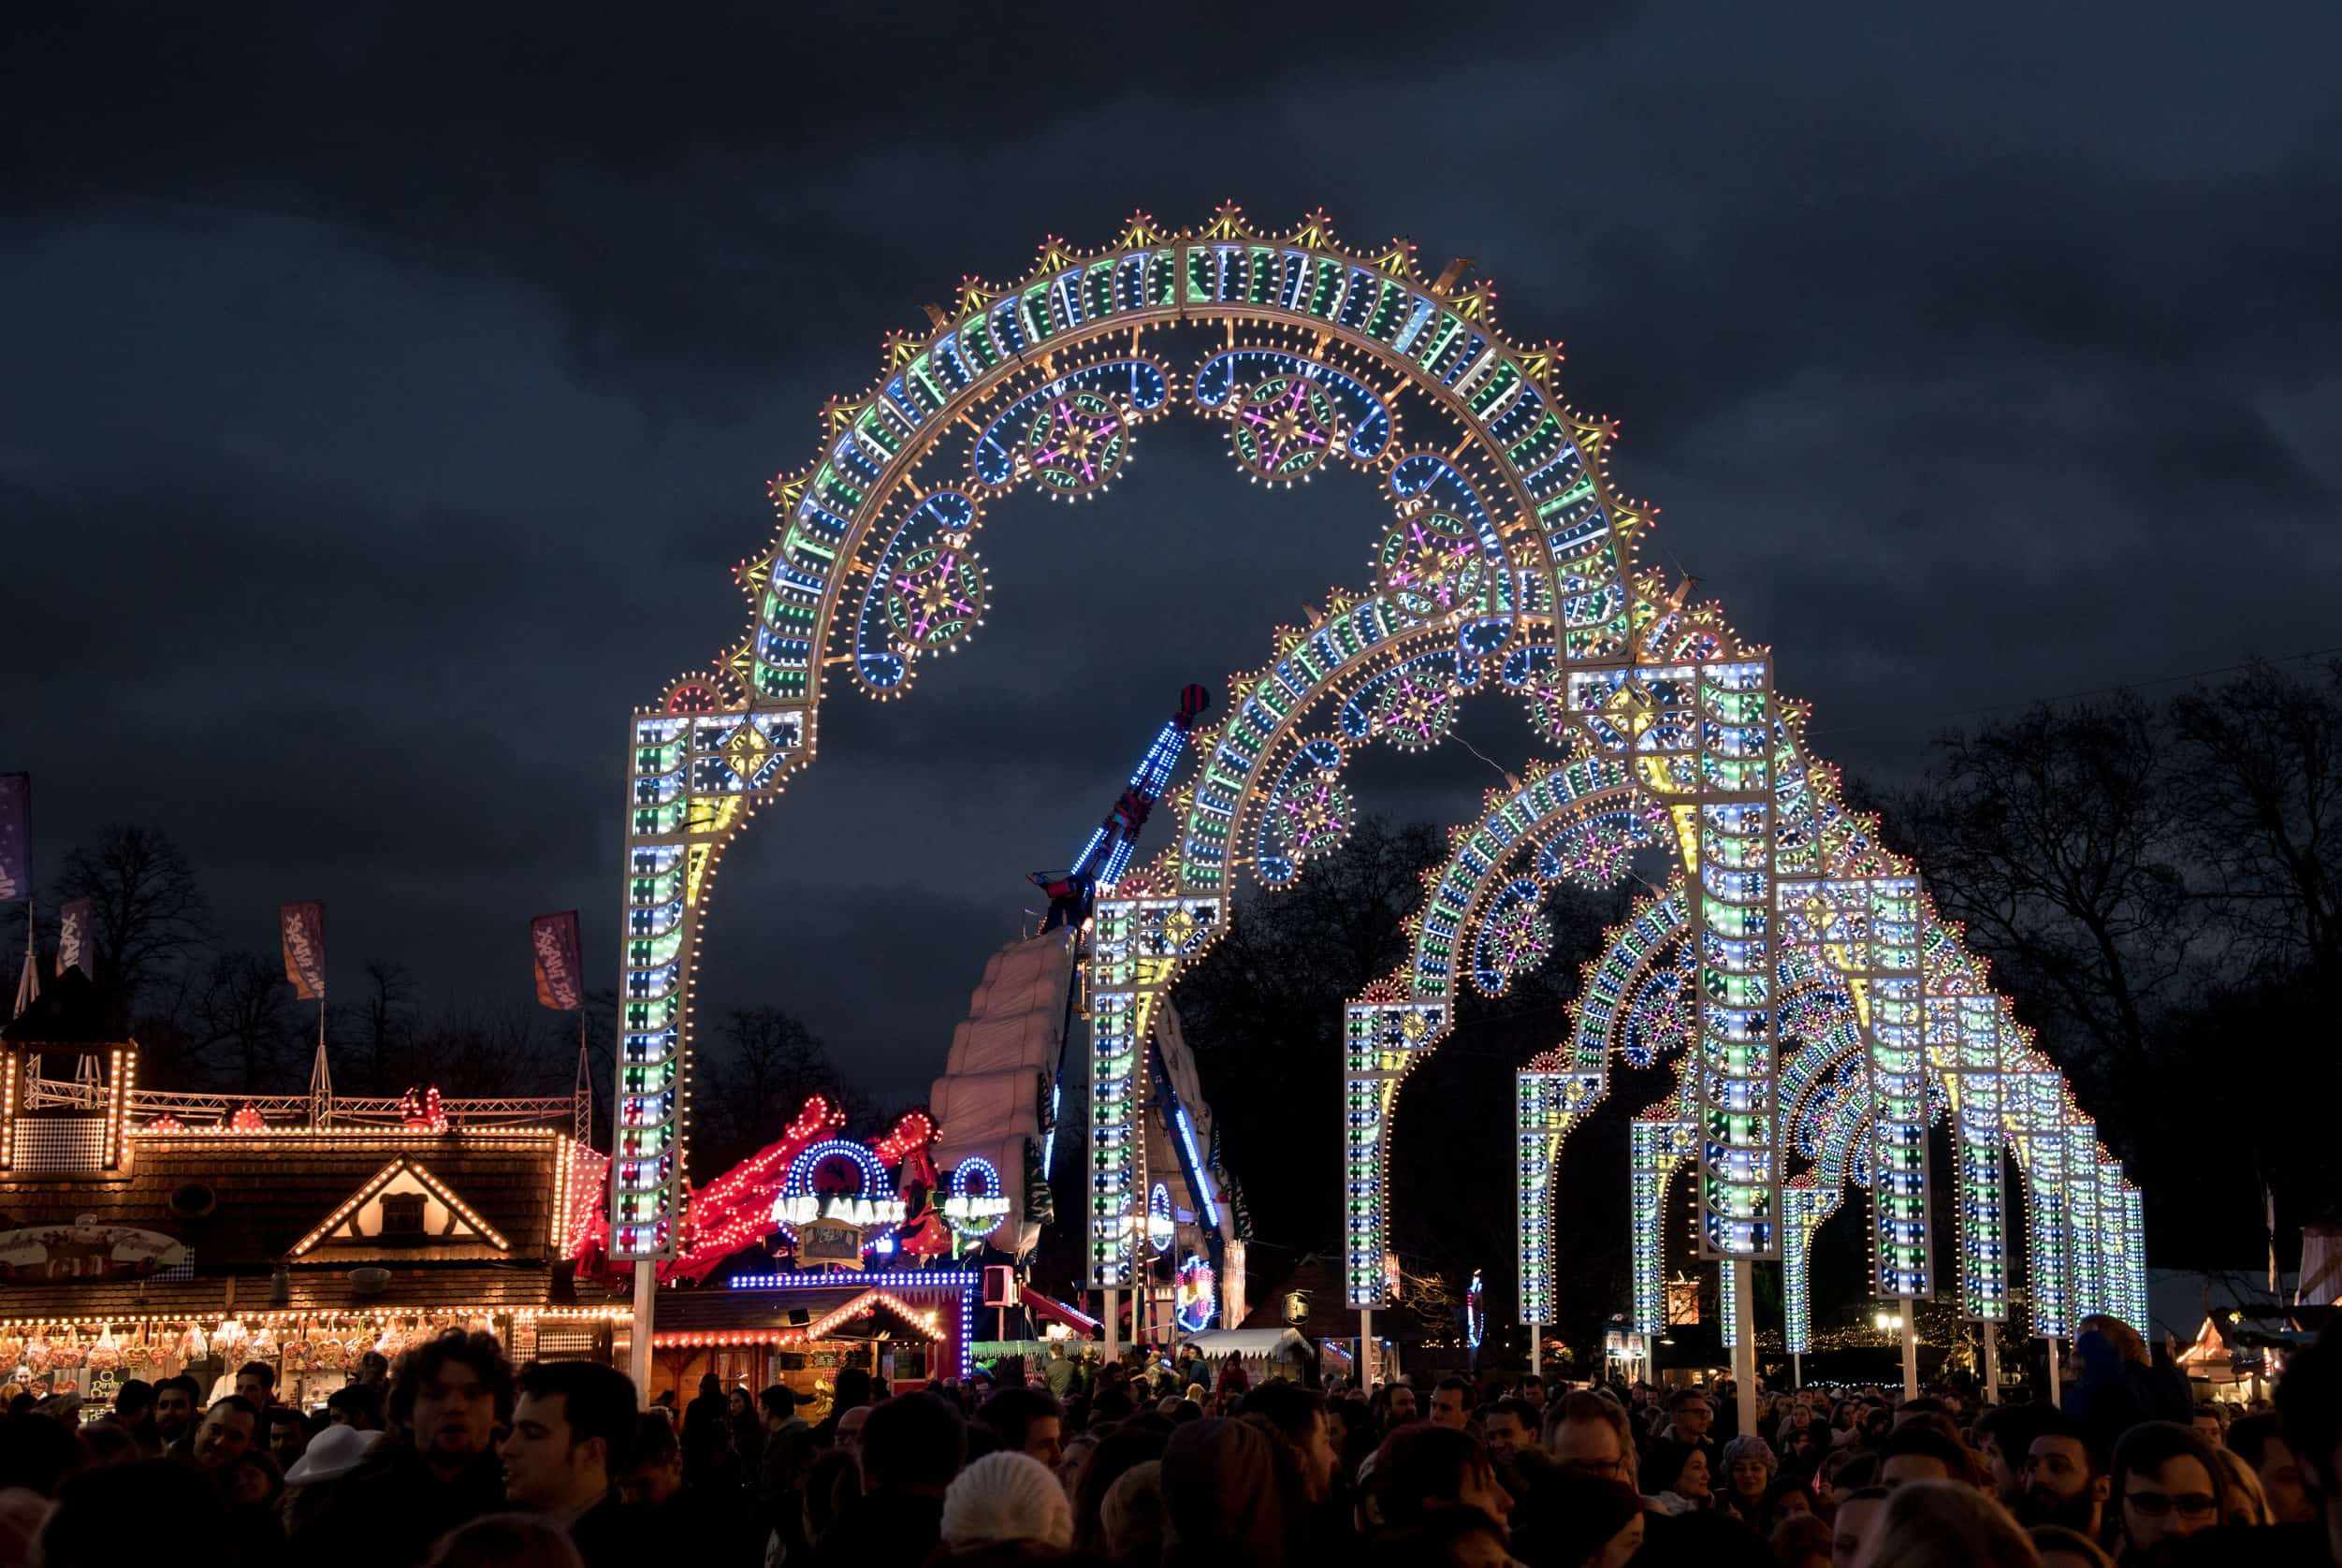 december-12-2015-people-at-winter-wonderland-amusement-park-in-hyde-park-in-london-uk-during-christmas-and-new-years-celebrations